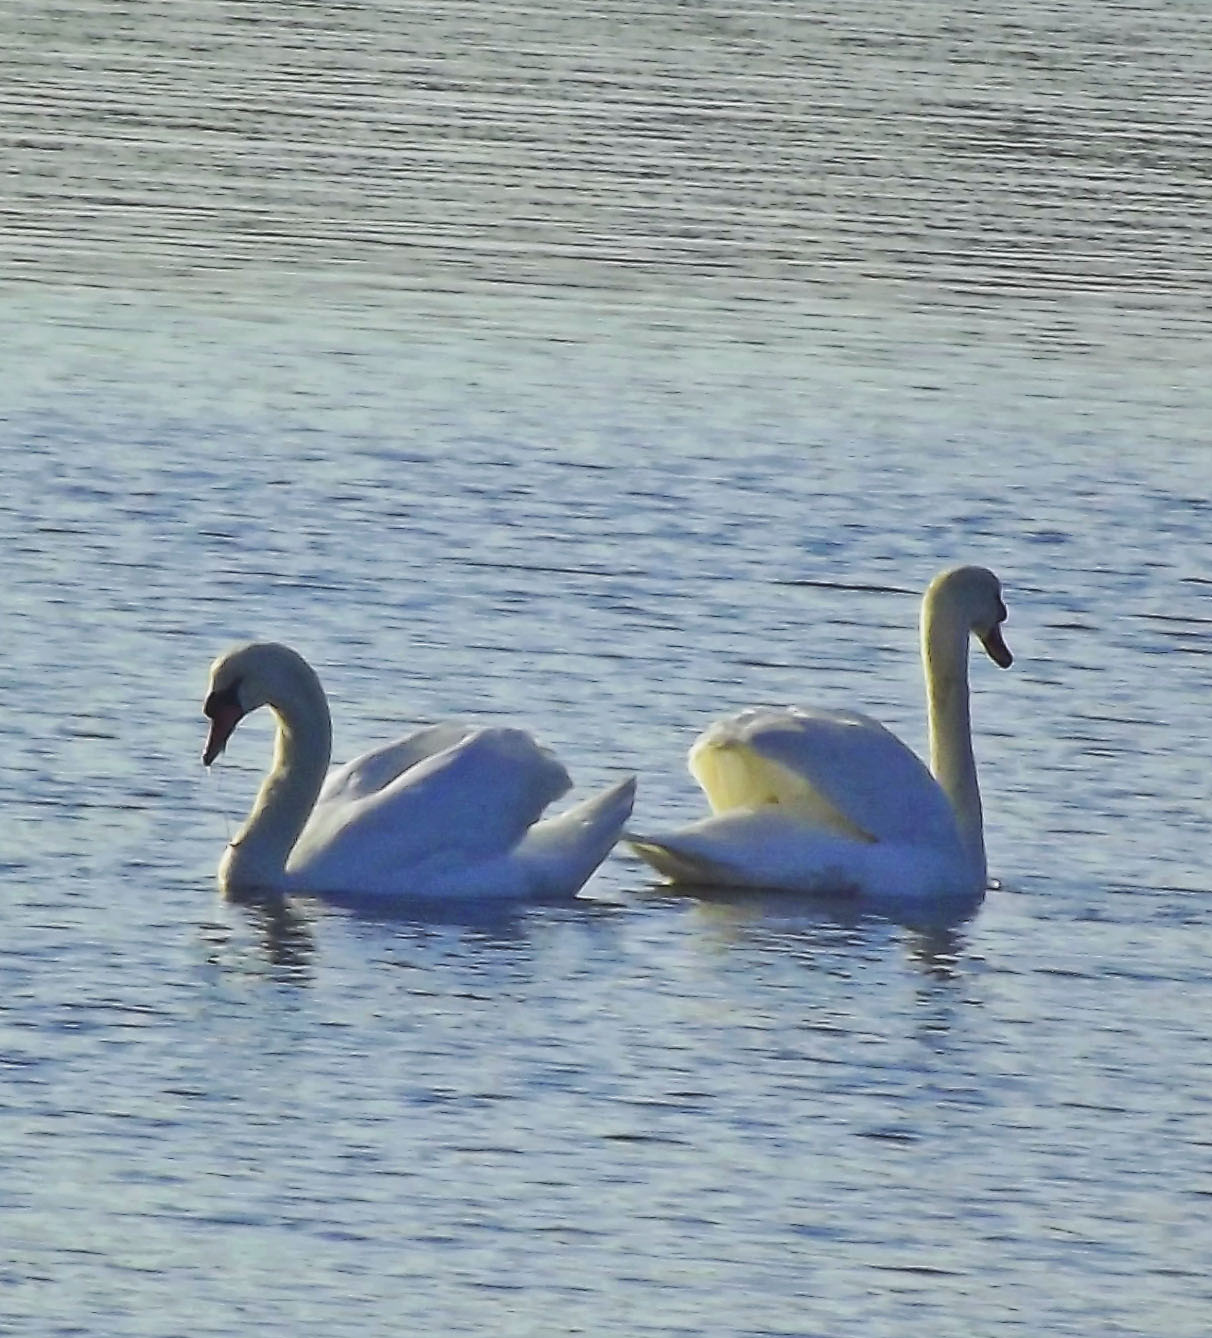 Mute Swans Posing With Puffed Wings